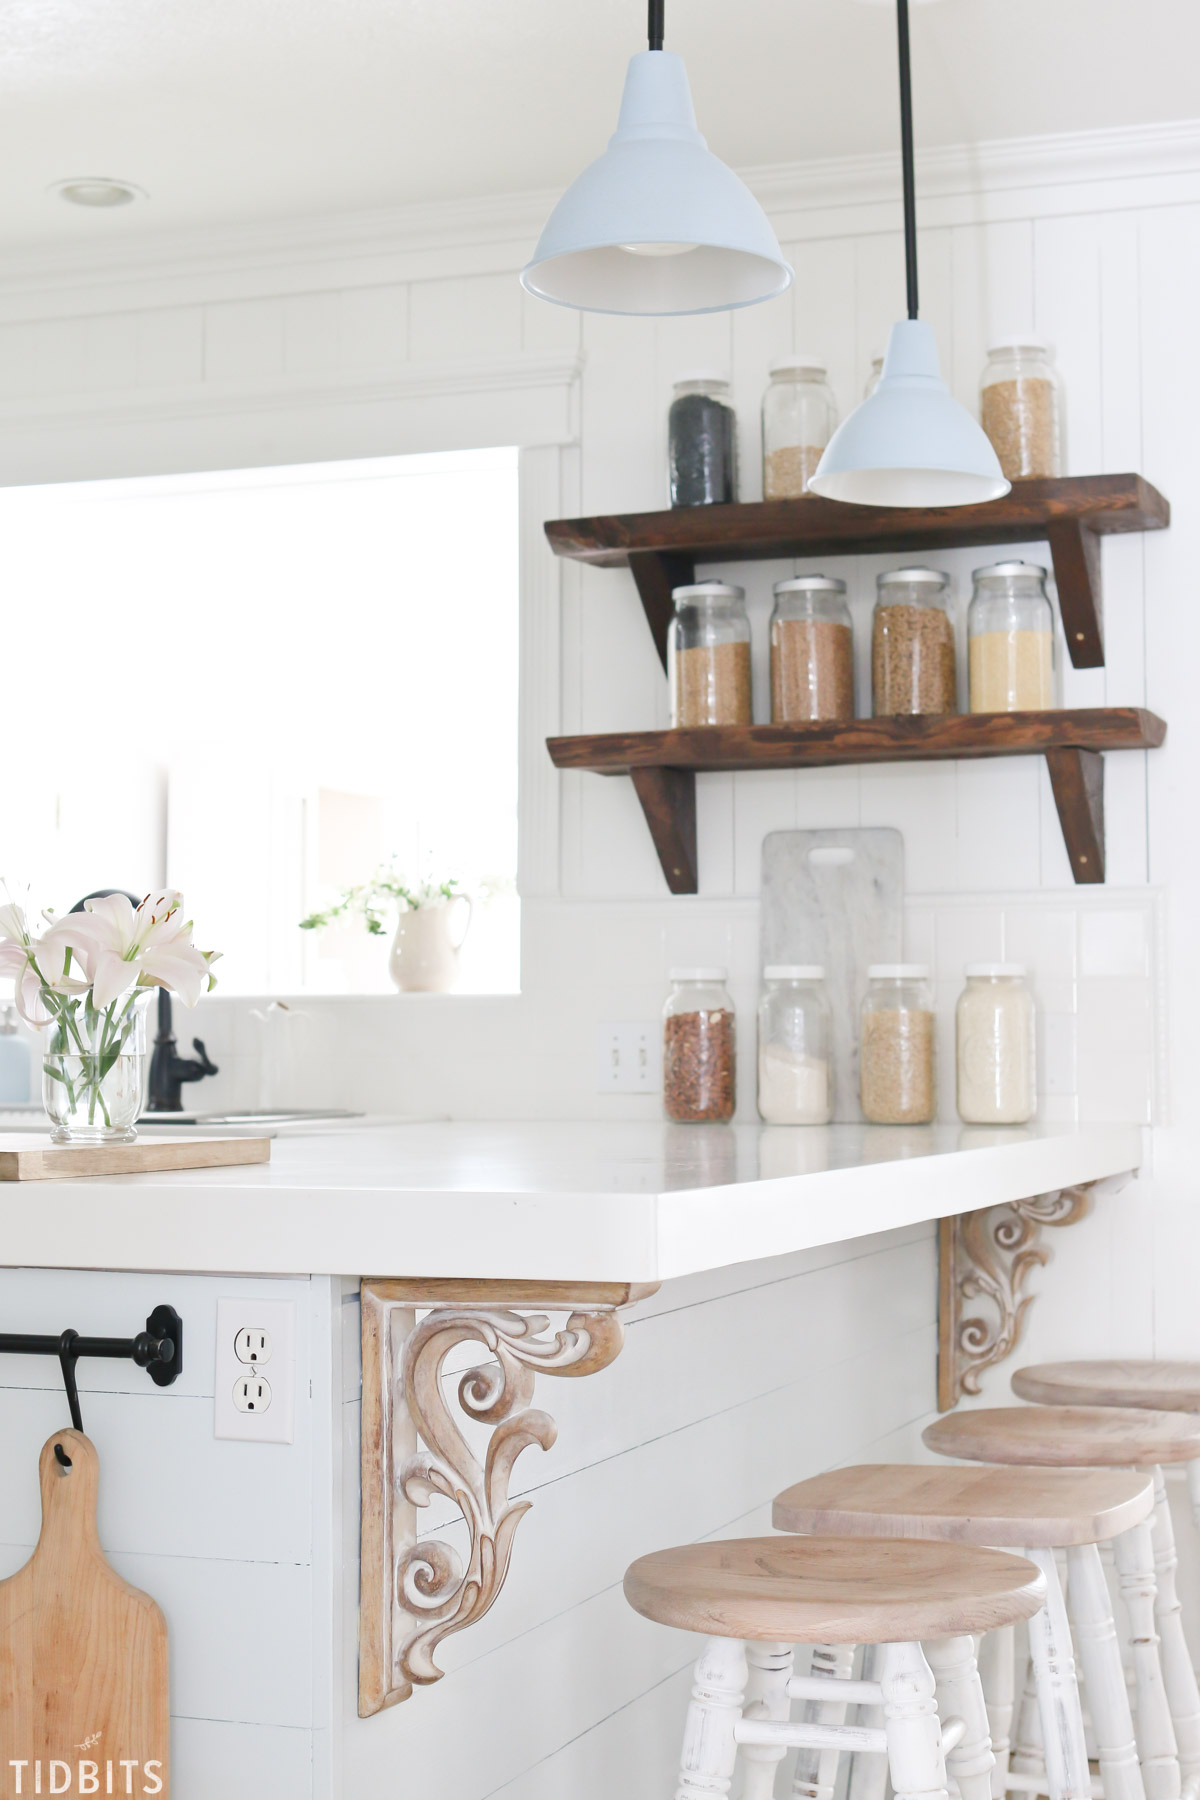 A Spring kitchen refresh. My process for cleaning and refreshing my cottage farmhouse kitchen. #camitidbits #cottagestyle #farmhousestyle #farmhousekitchen #cottagekitchen #springdecor